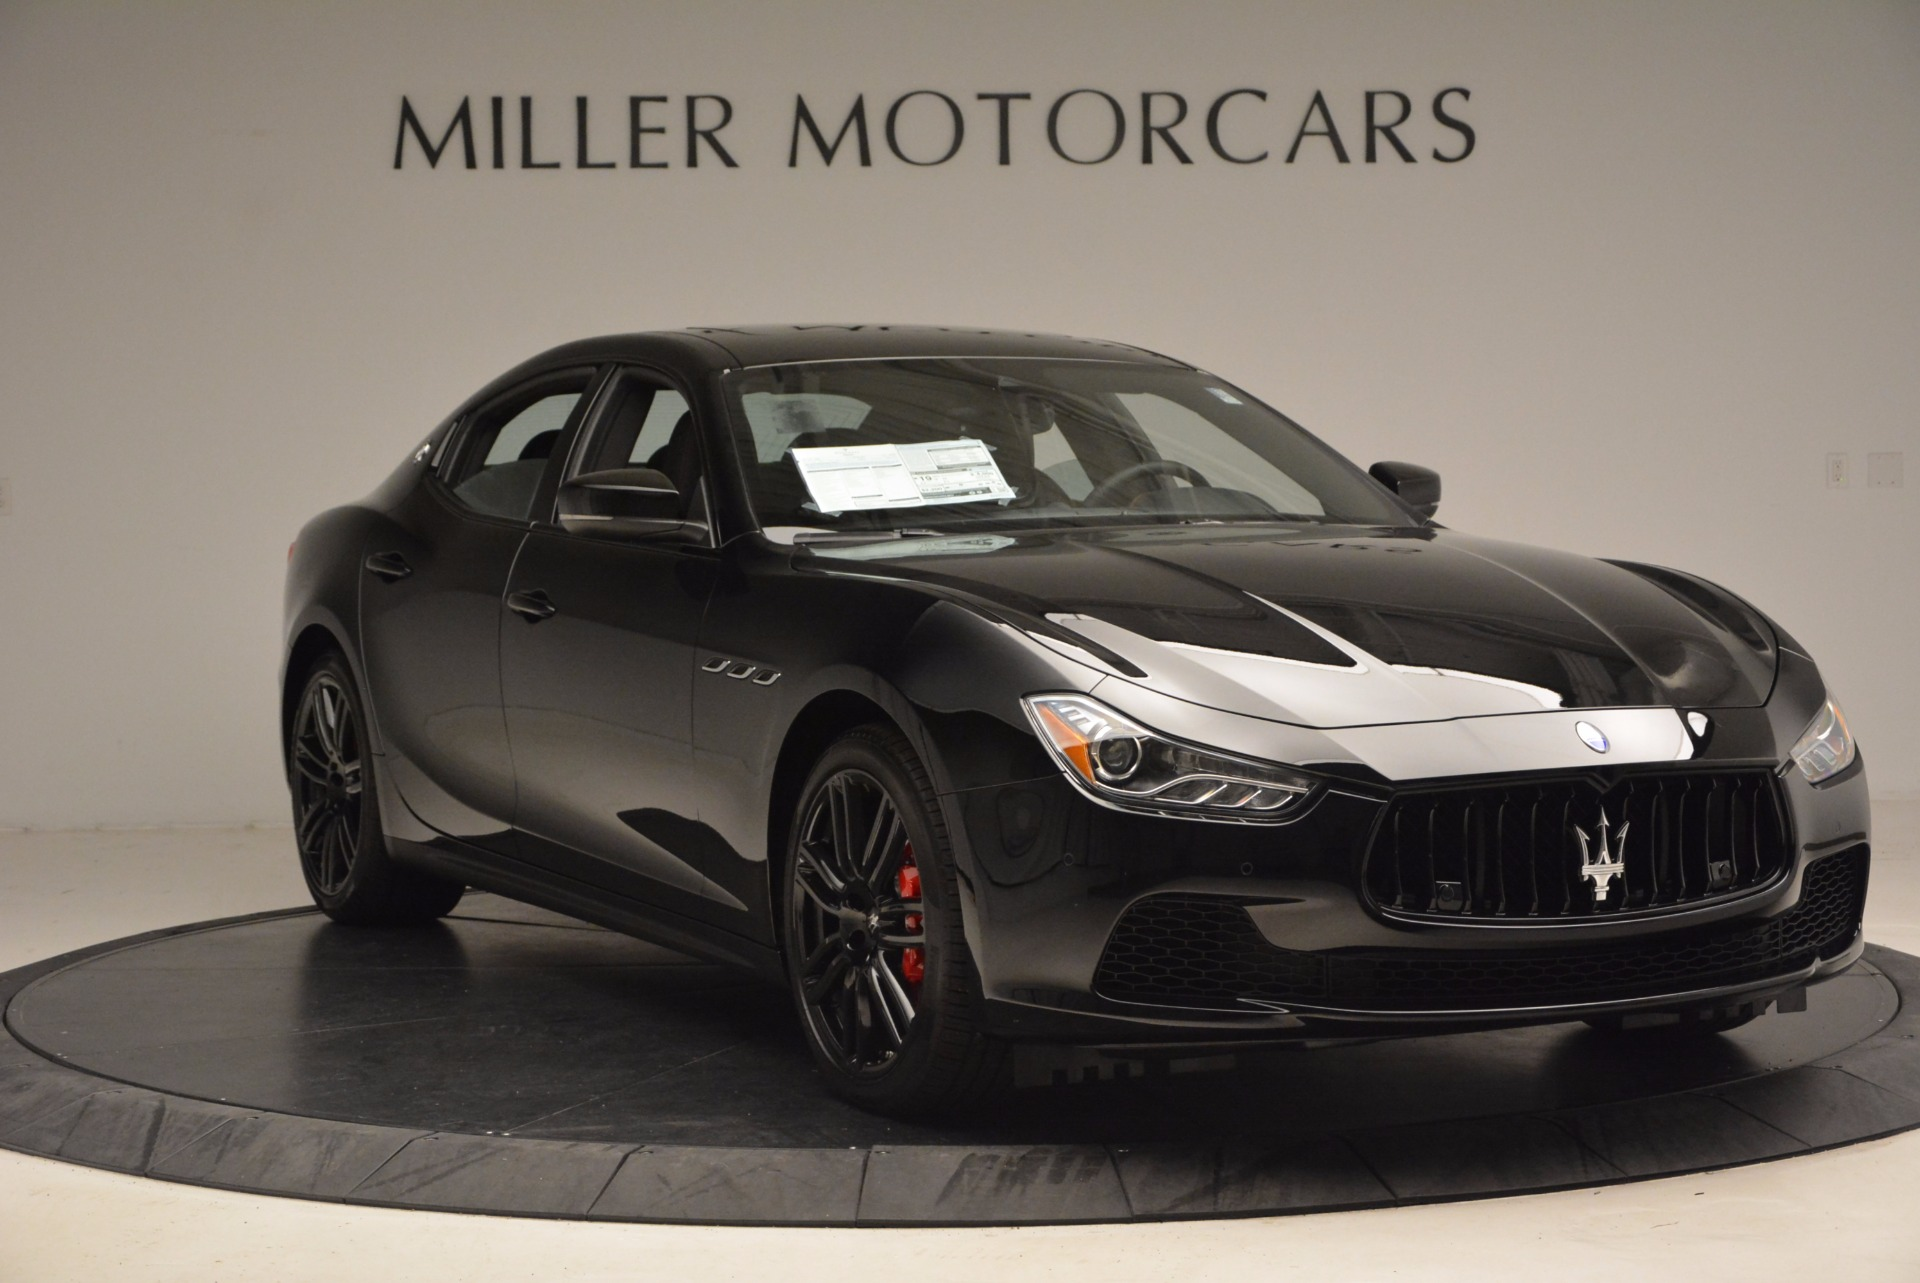 New 2017 Maserati Ghibli Nerissimo Edition S Q4 For Sale In Westport, CT 1391_p11